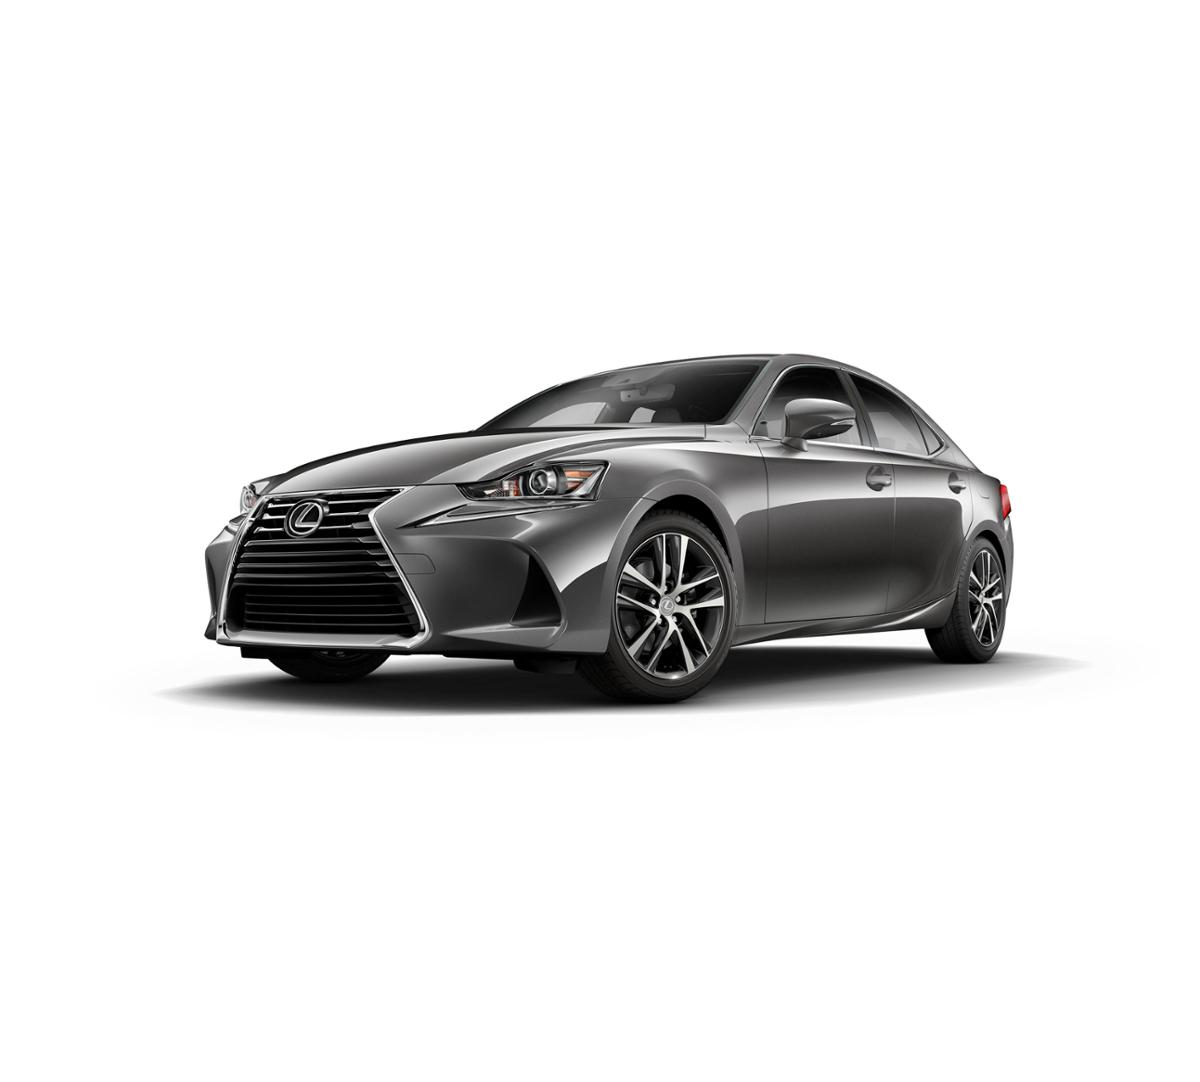 2019 Lexus IS 300 Vehicle Photo in Evansville, IN 47715